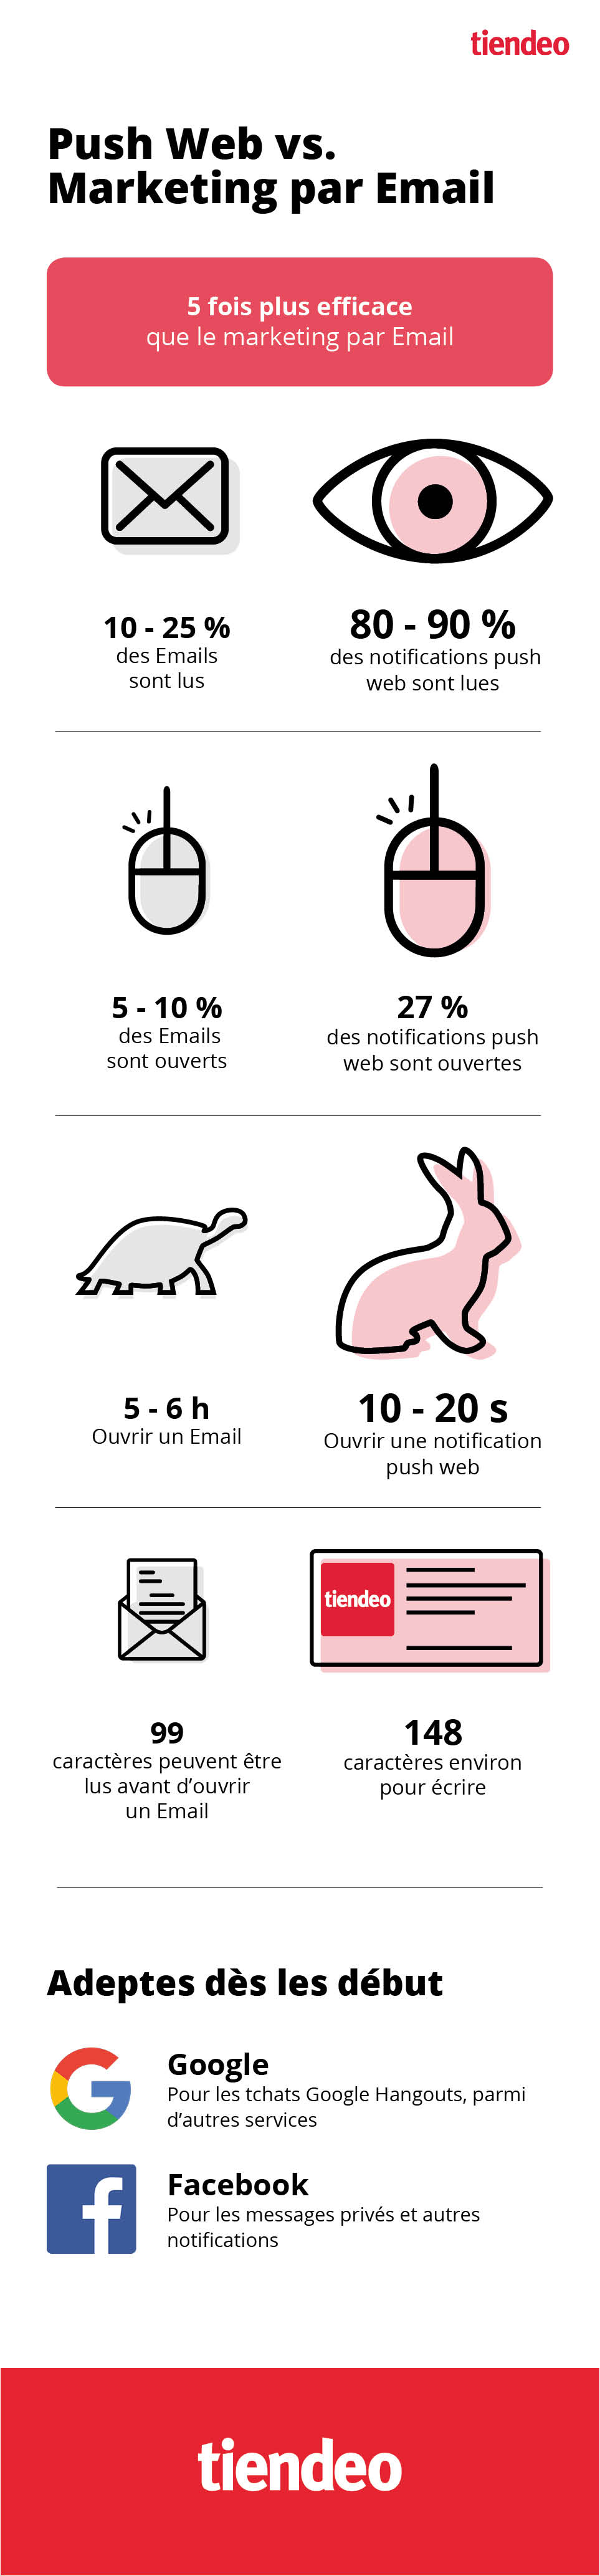 FR_infographics_Web Push vs Email Marketing